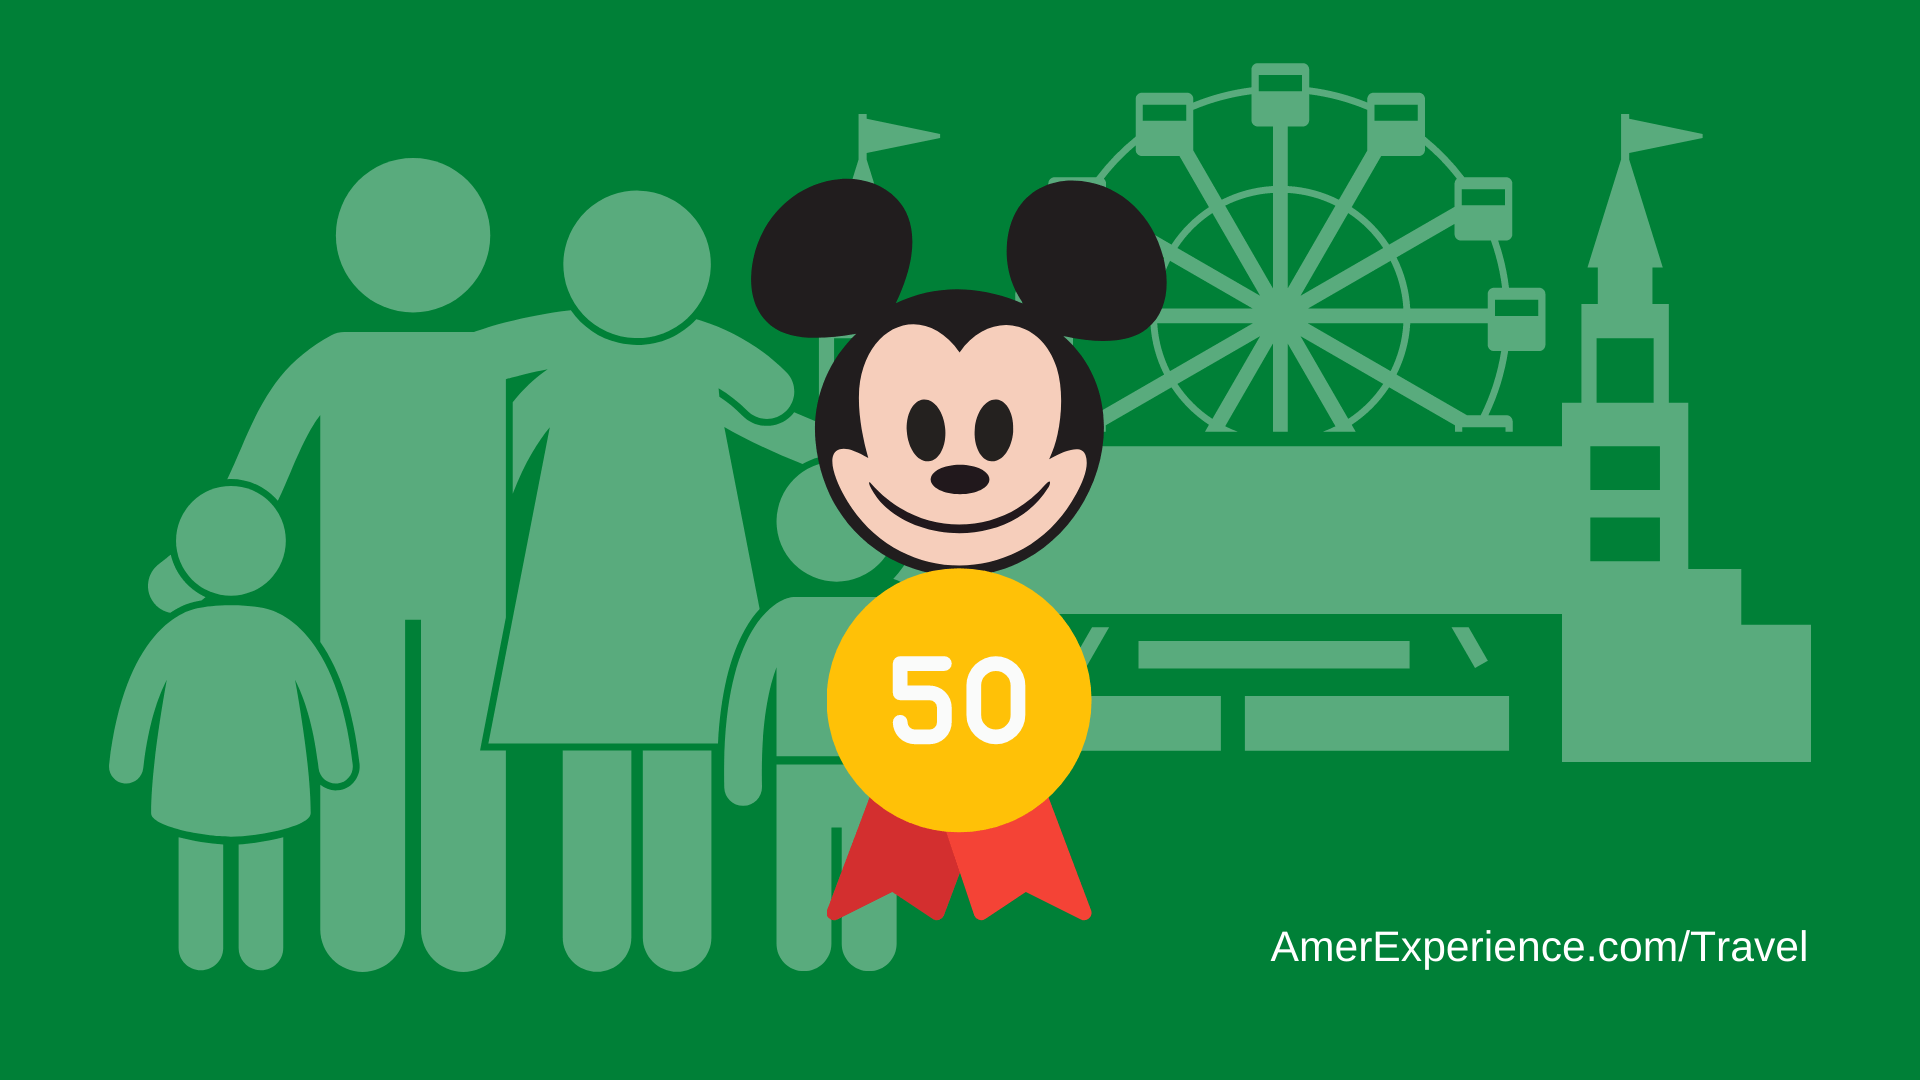 From fairy tale weddings to Disney World's 50th anniversary, 10 ways to soak in the magic